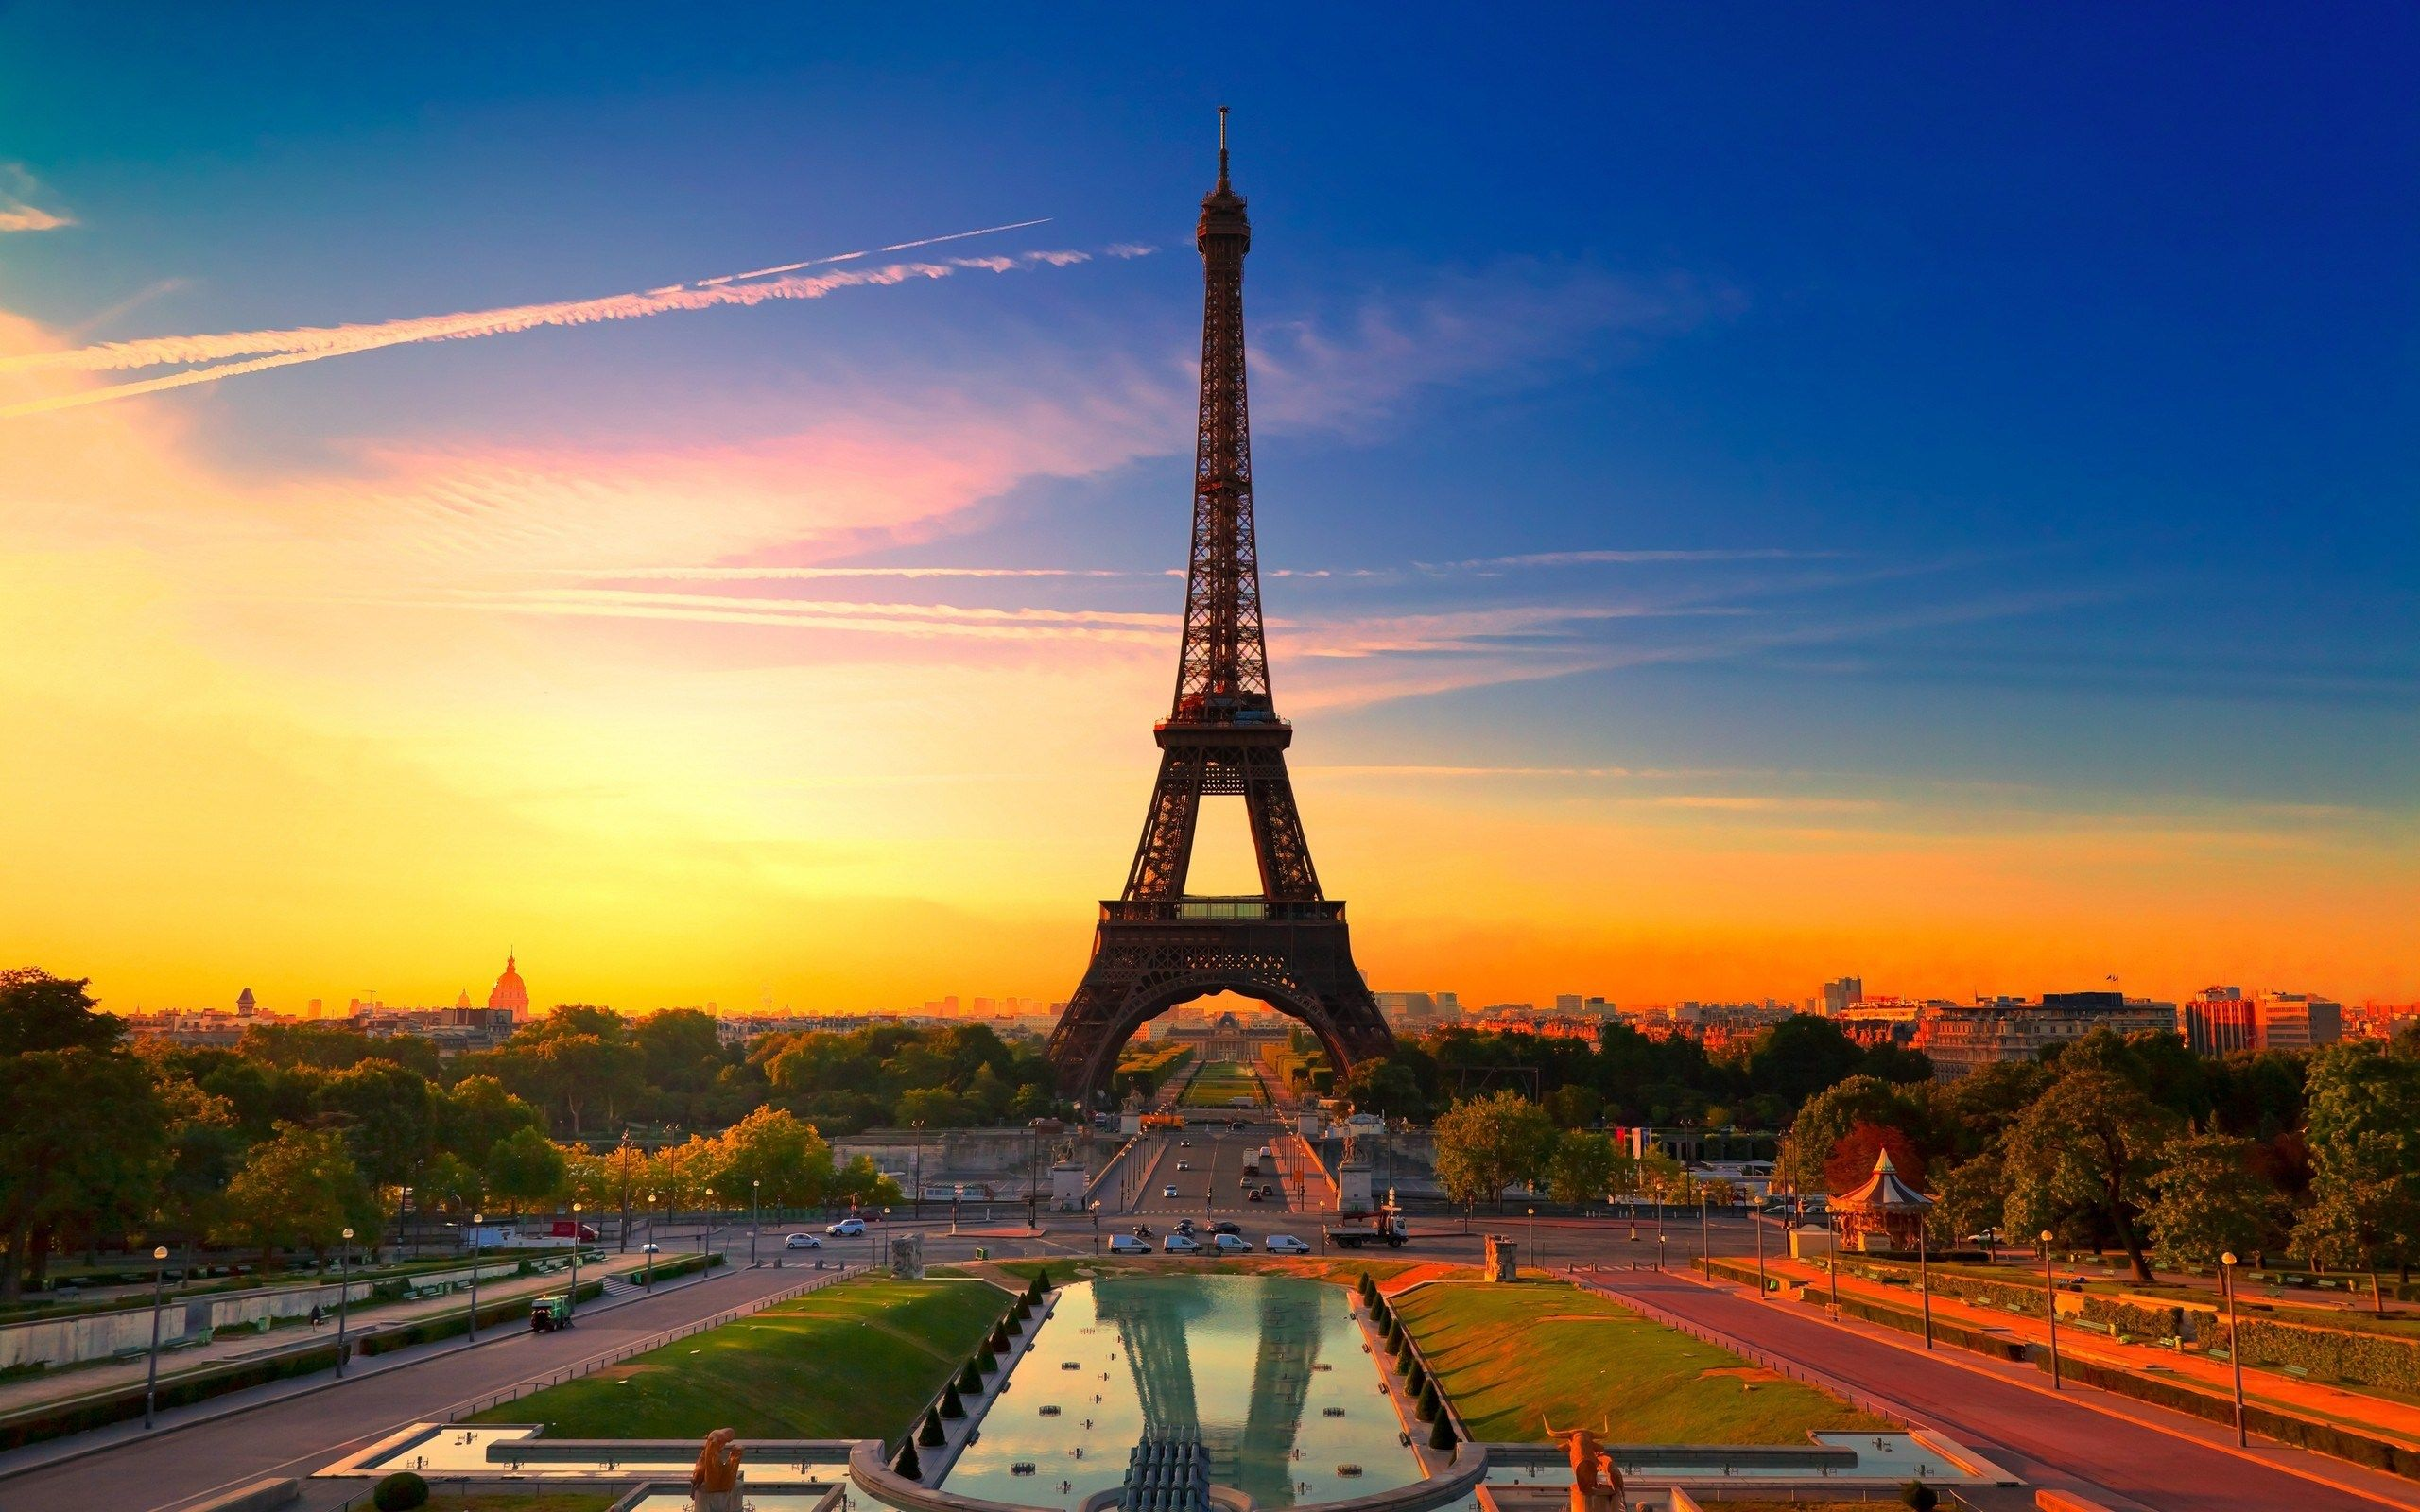 eiffel tower pic: high definition backgrounds - eiffel tower